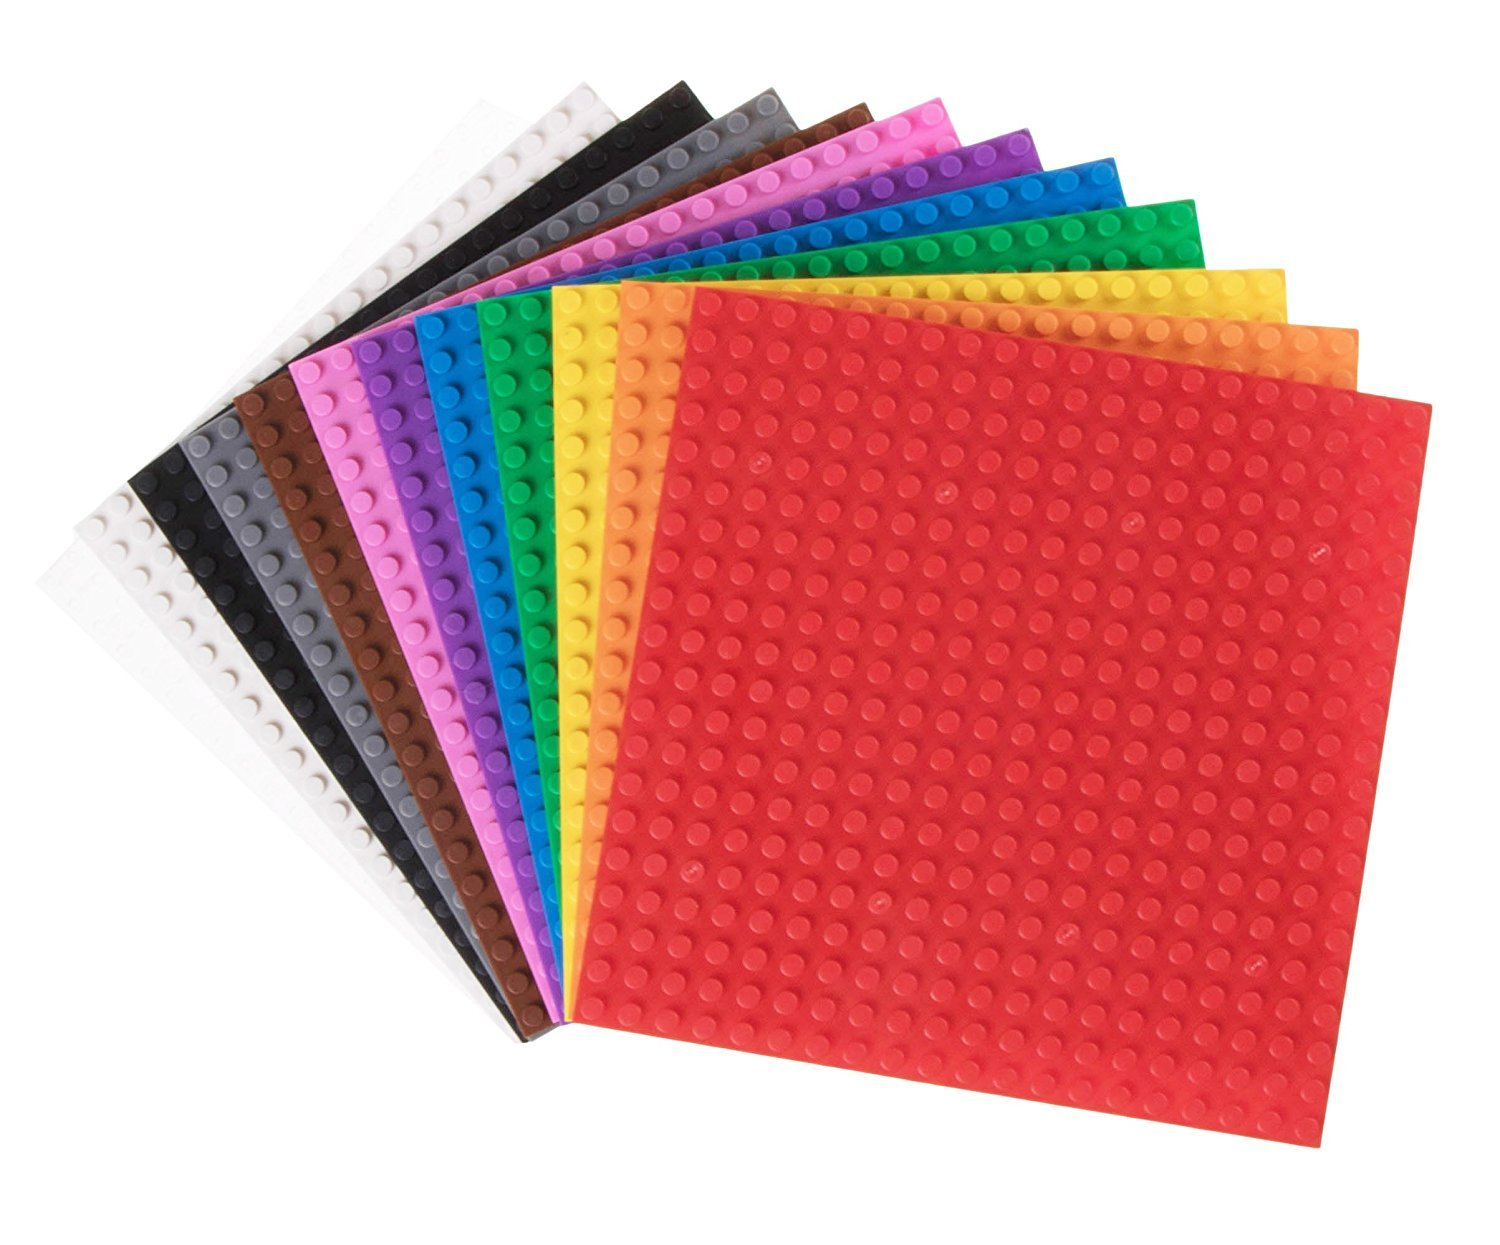 "Classic Baseplates | 100% Compatible with All Major Building Brick Brands | Stackable Bases | 12 Tight Fit Base Plates in Rainbow Colors 6"" x 6"""